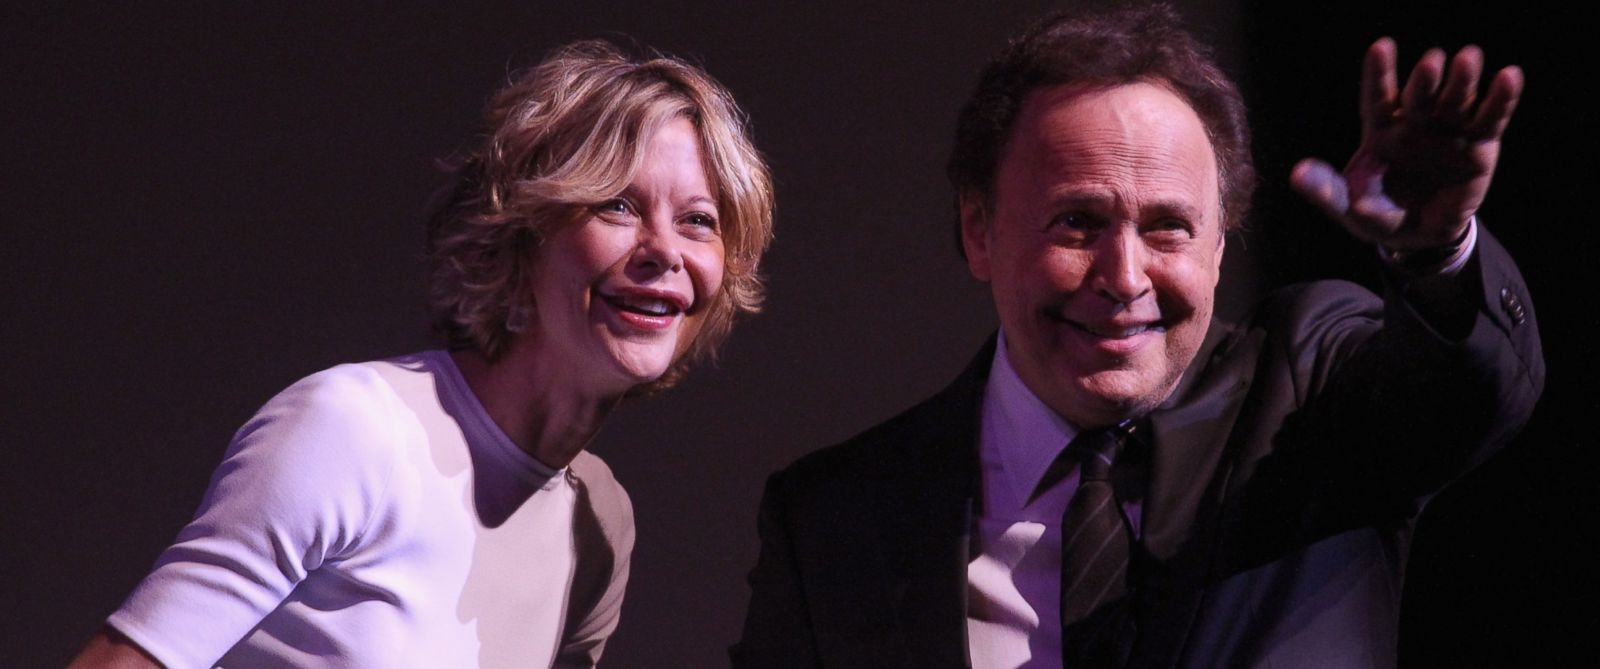 PHOTO: Meg Ryan, left, and Billy Crystal, right, speak onstage at the 41st Annual Chaplin Award Gala at Lincoln Center on April 28, 2014 in New York City.